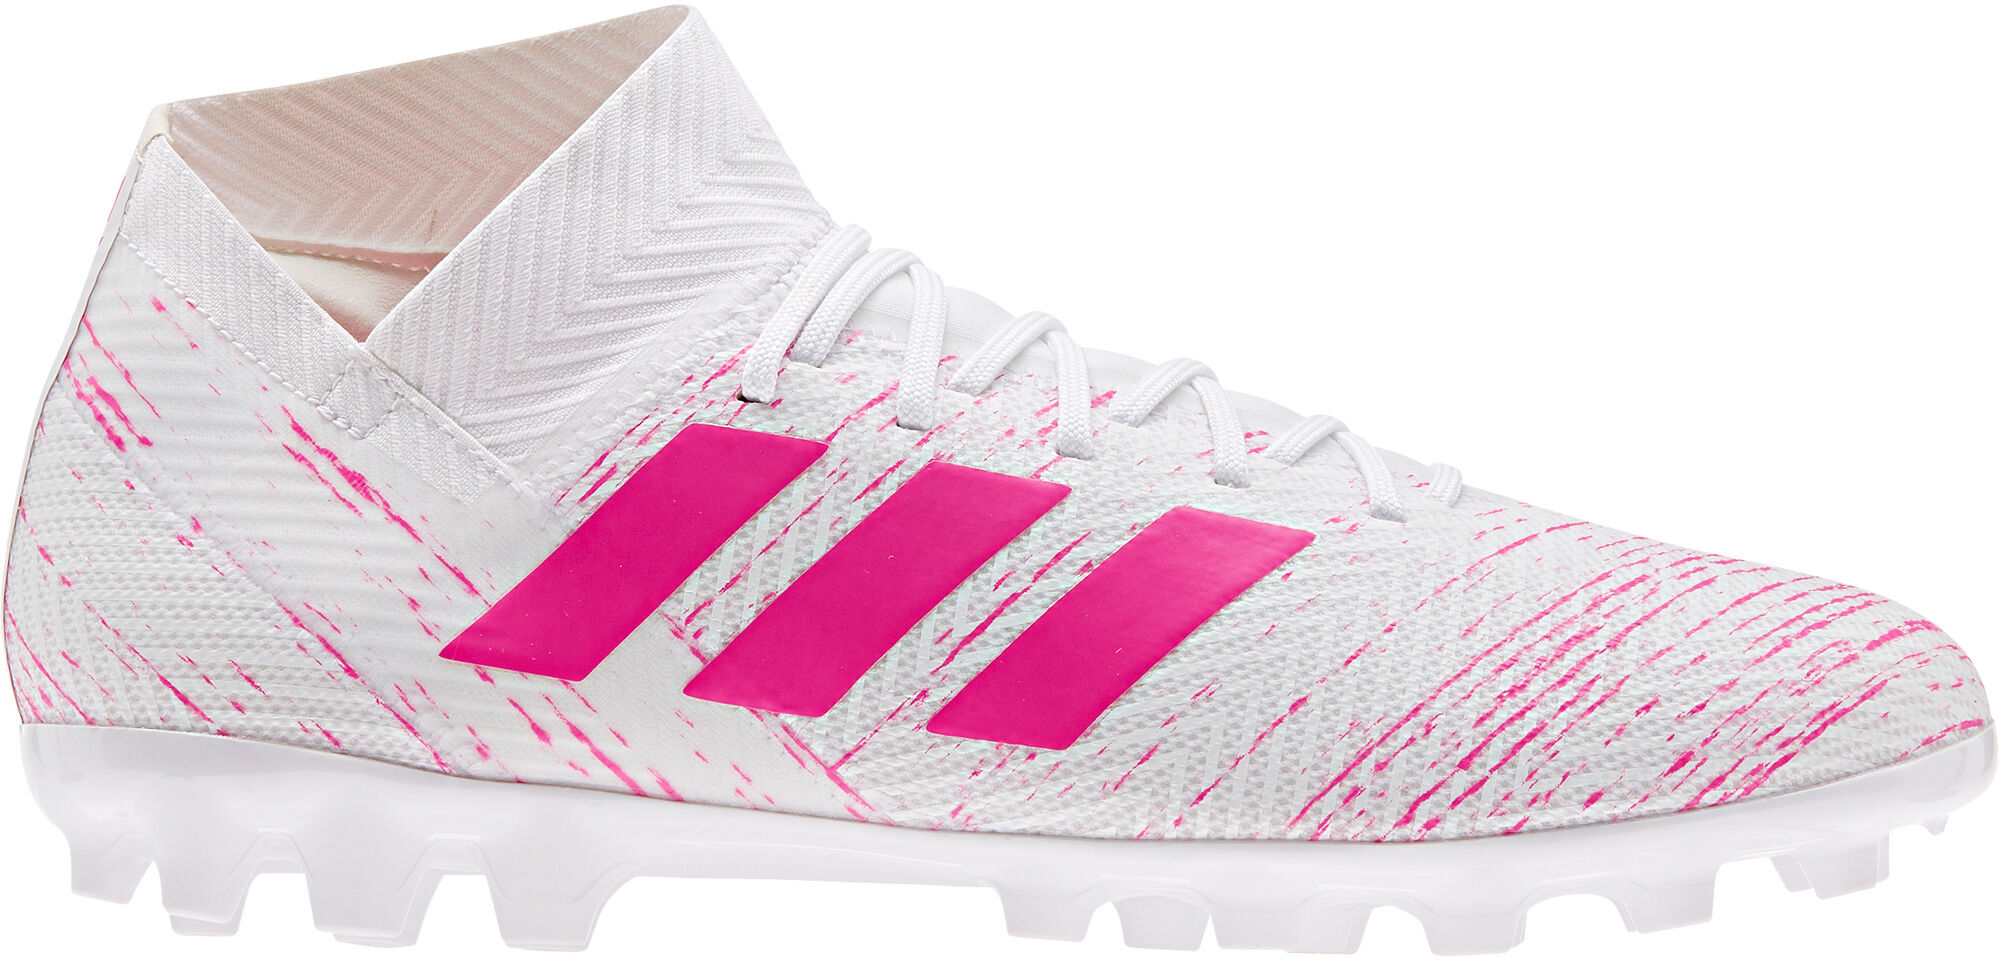 Adidas PackIntersport De Fútbol Botas Virtuoso PnwOk0